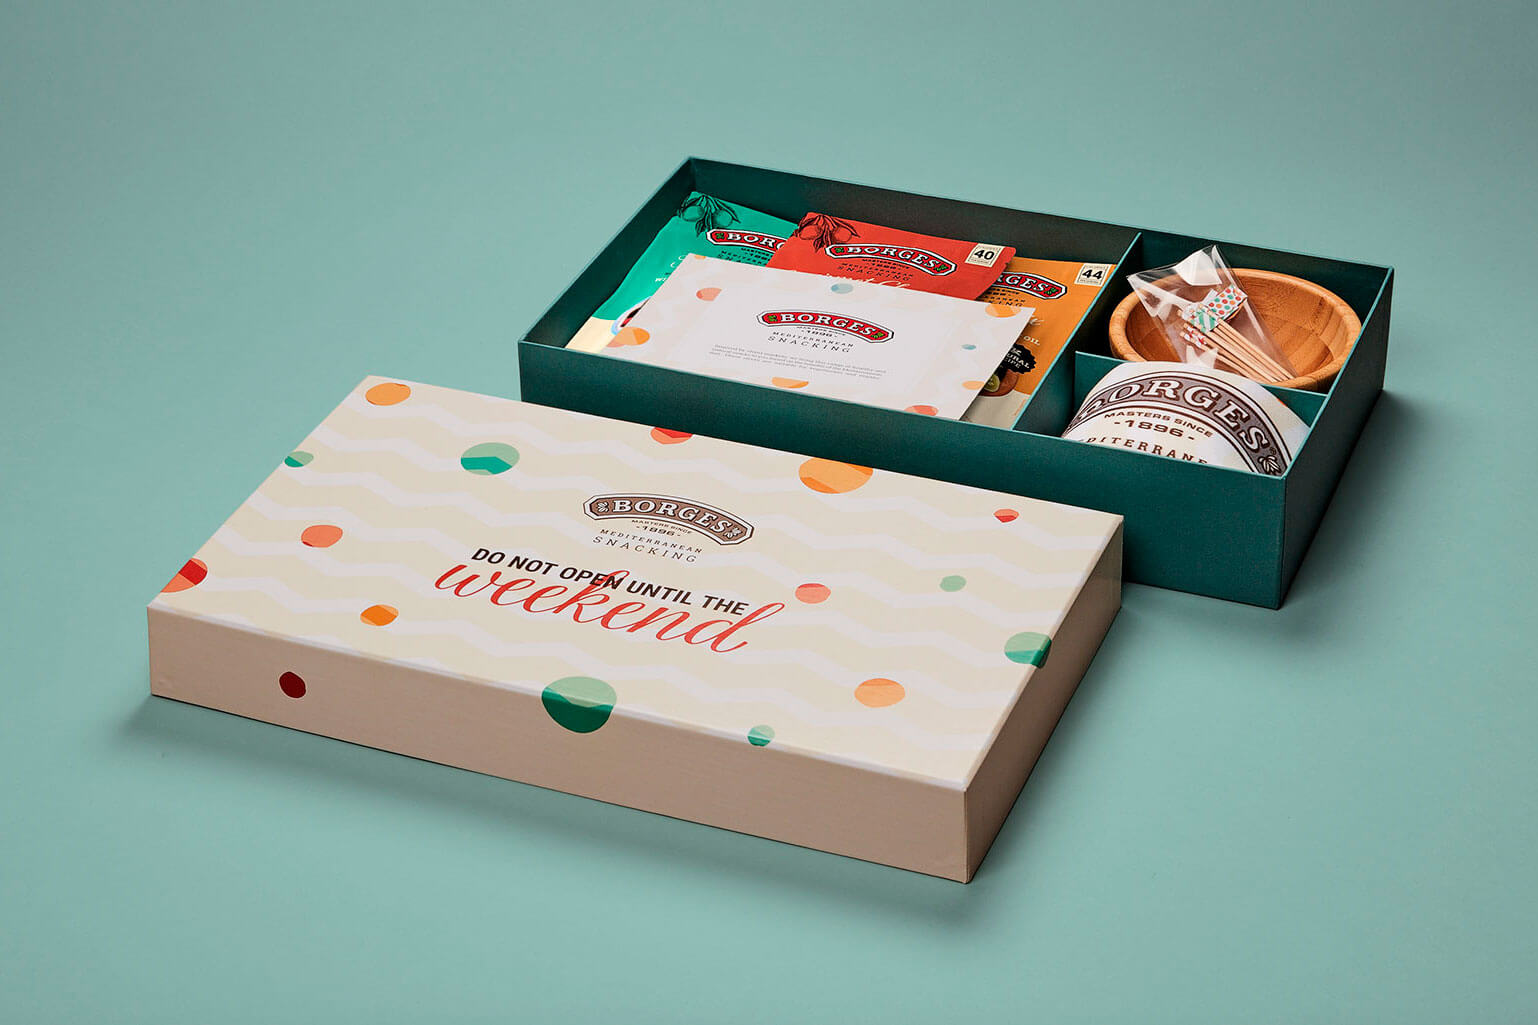 Packaging Borges Mediterranean Snacking branding diseño naming ilustracion caja comercial kit